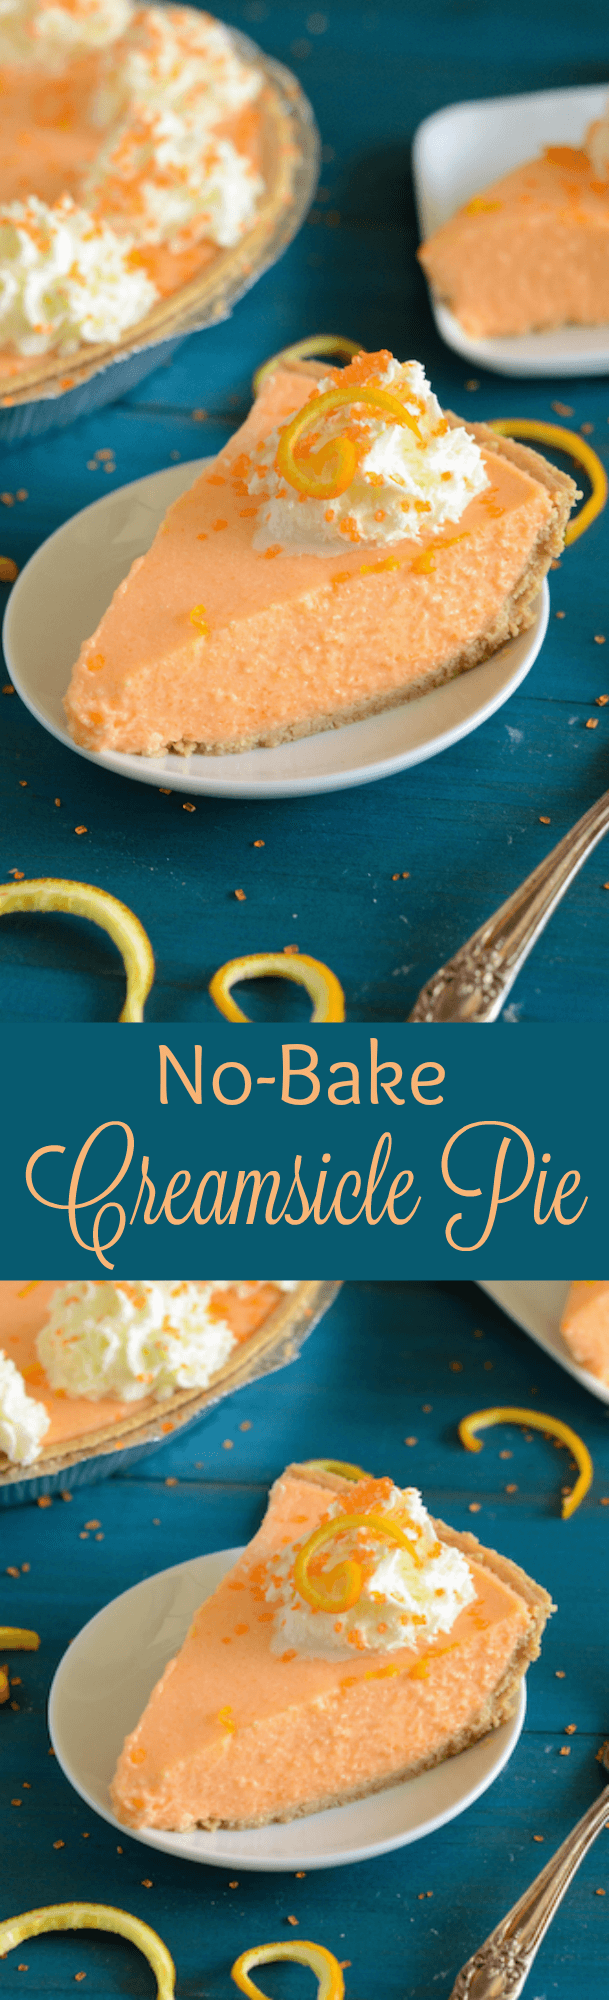 No-Bake Creamsicle Pie!